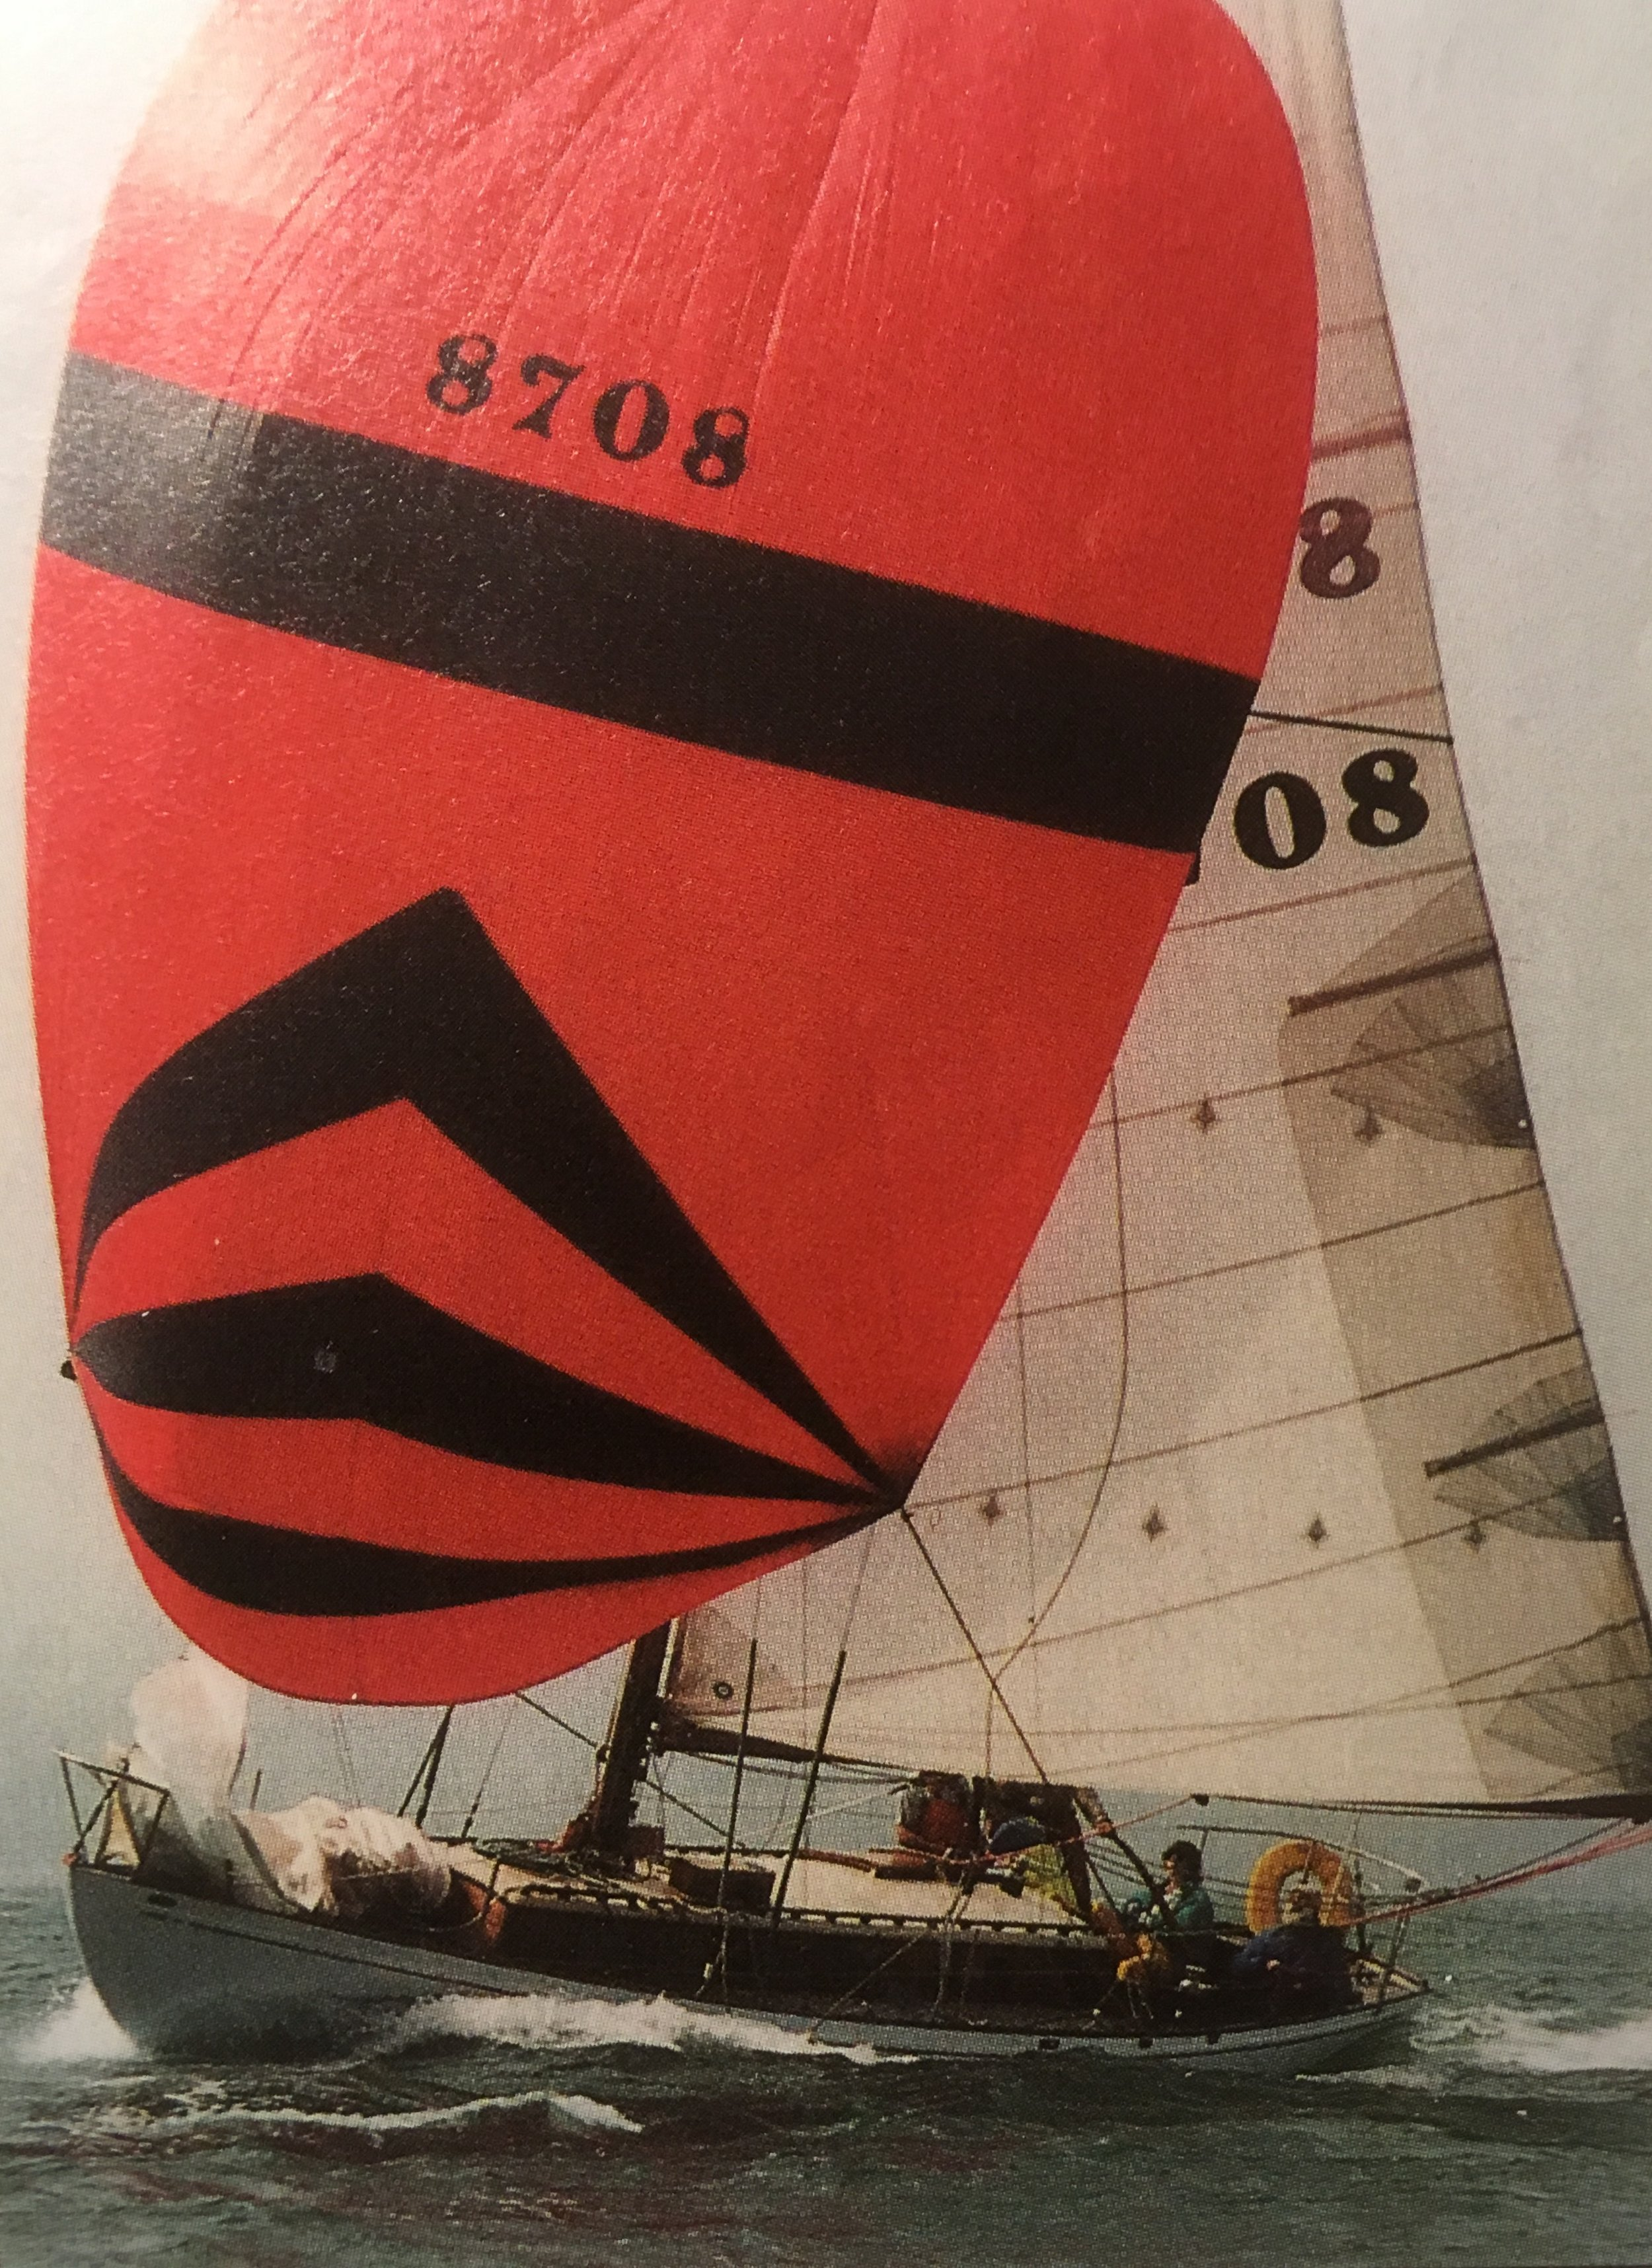 CREDIT, the author's boat, is one of the fleet of Farallone Clippers still actively sailing and racing on San Francisco Bay. CREDIT has been through many changes to support her vastly altered rig. Other boats of the fleet, for example Gene Buck's OUESSANT, carry their original plans.